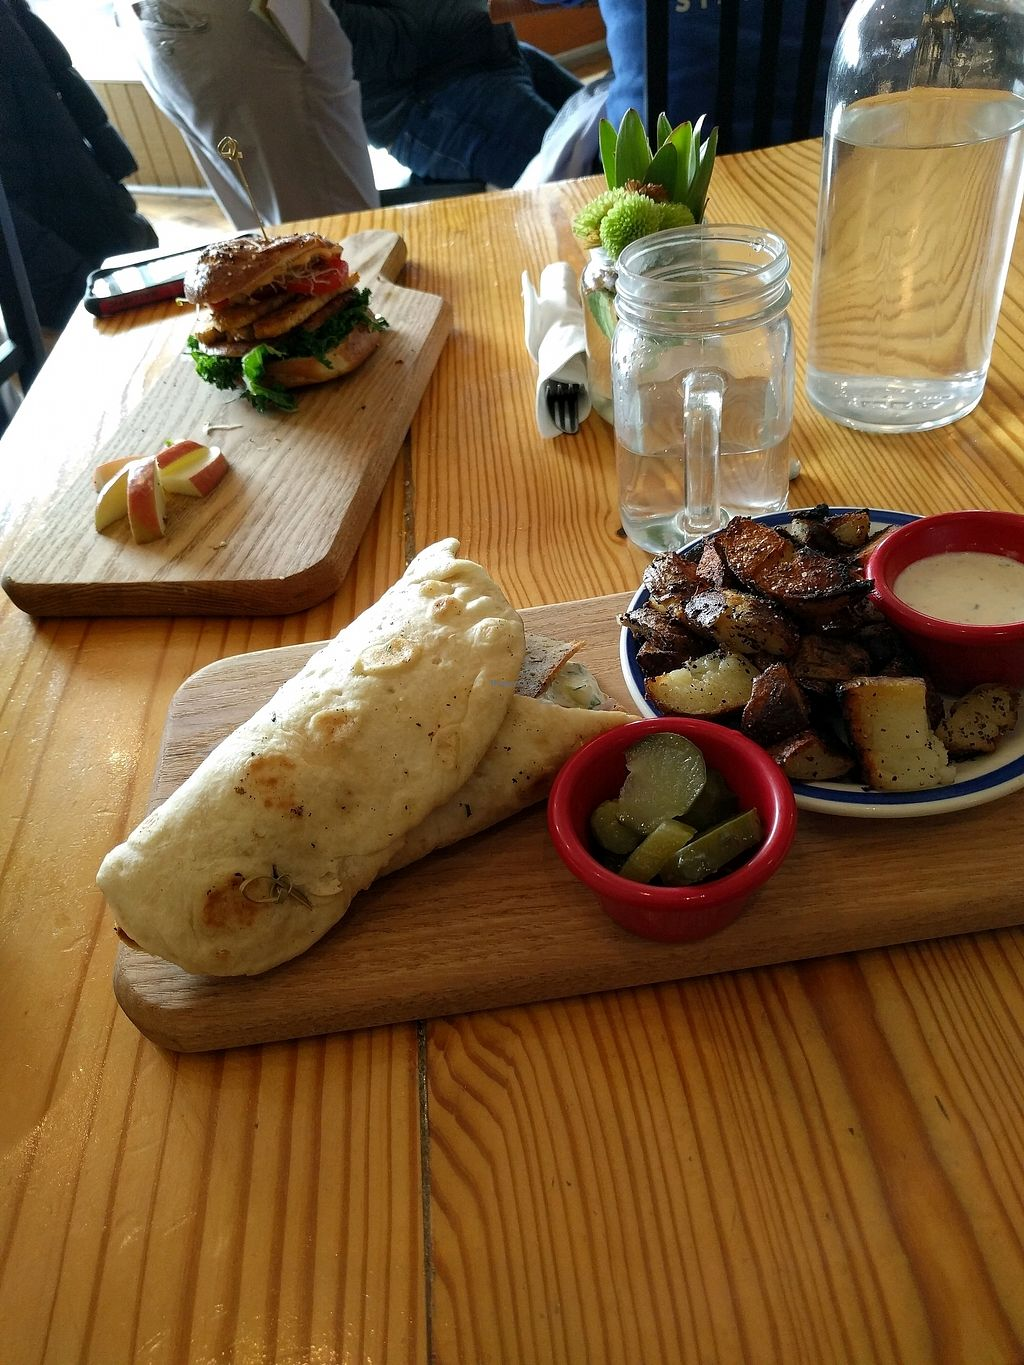 """Photo of Cleveland Vegan  by <a href=""""/members/profile/CookieCat"""">CookieCat</a> <br/>gyro and breakfast sandwich  <br/> December 14, 2017  - <a href='/contact/abuse/image/36549/335635'>Report</a>"""